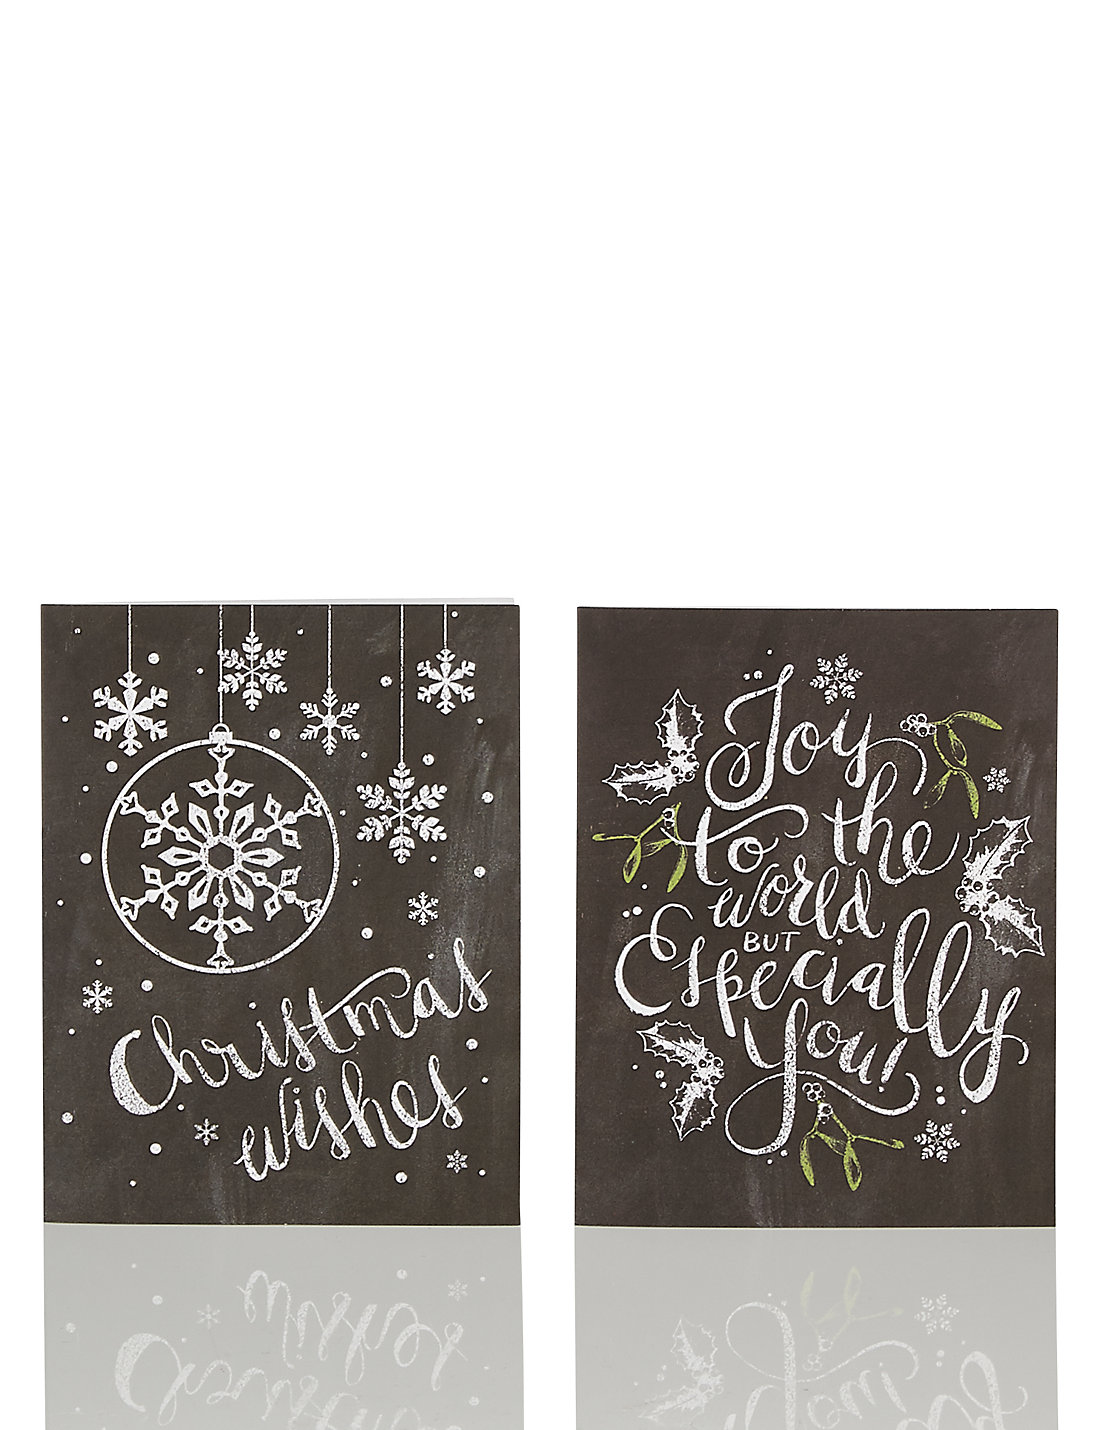 Breast cancer christmas greeting cards gallery greeting card 20 chalkboard greetings charity christmas multipack cards supportin 20 chalkboard greetings charity christmas multipack cards supporting kristyandbryce Choice Image